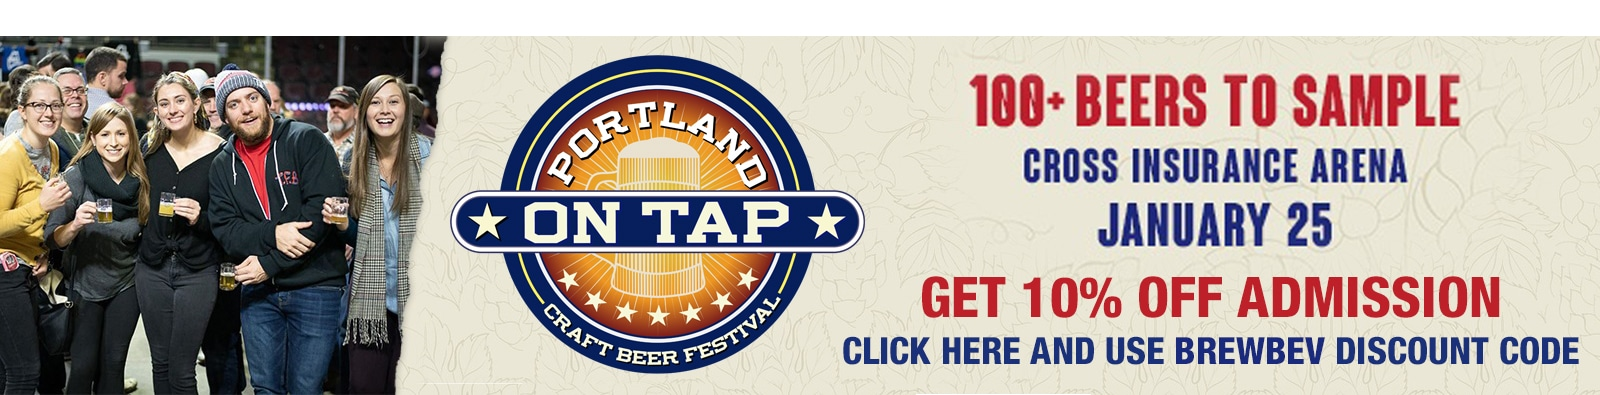 Get 10% off admission to Portland On Tap January 25